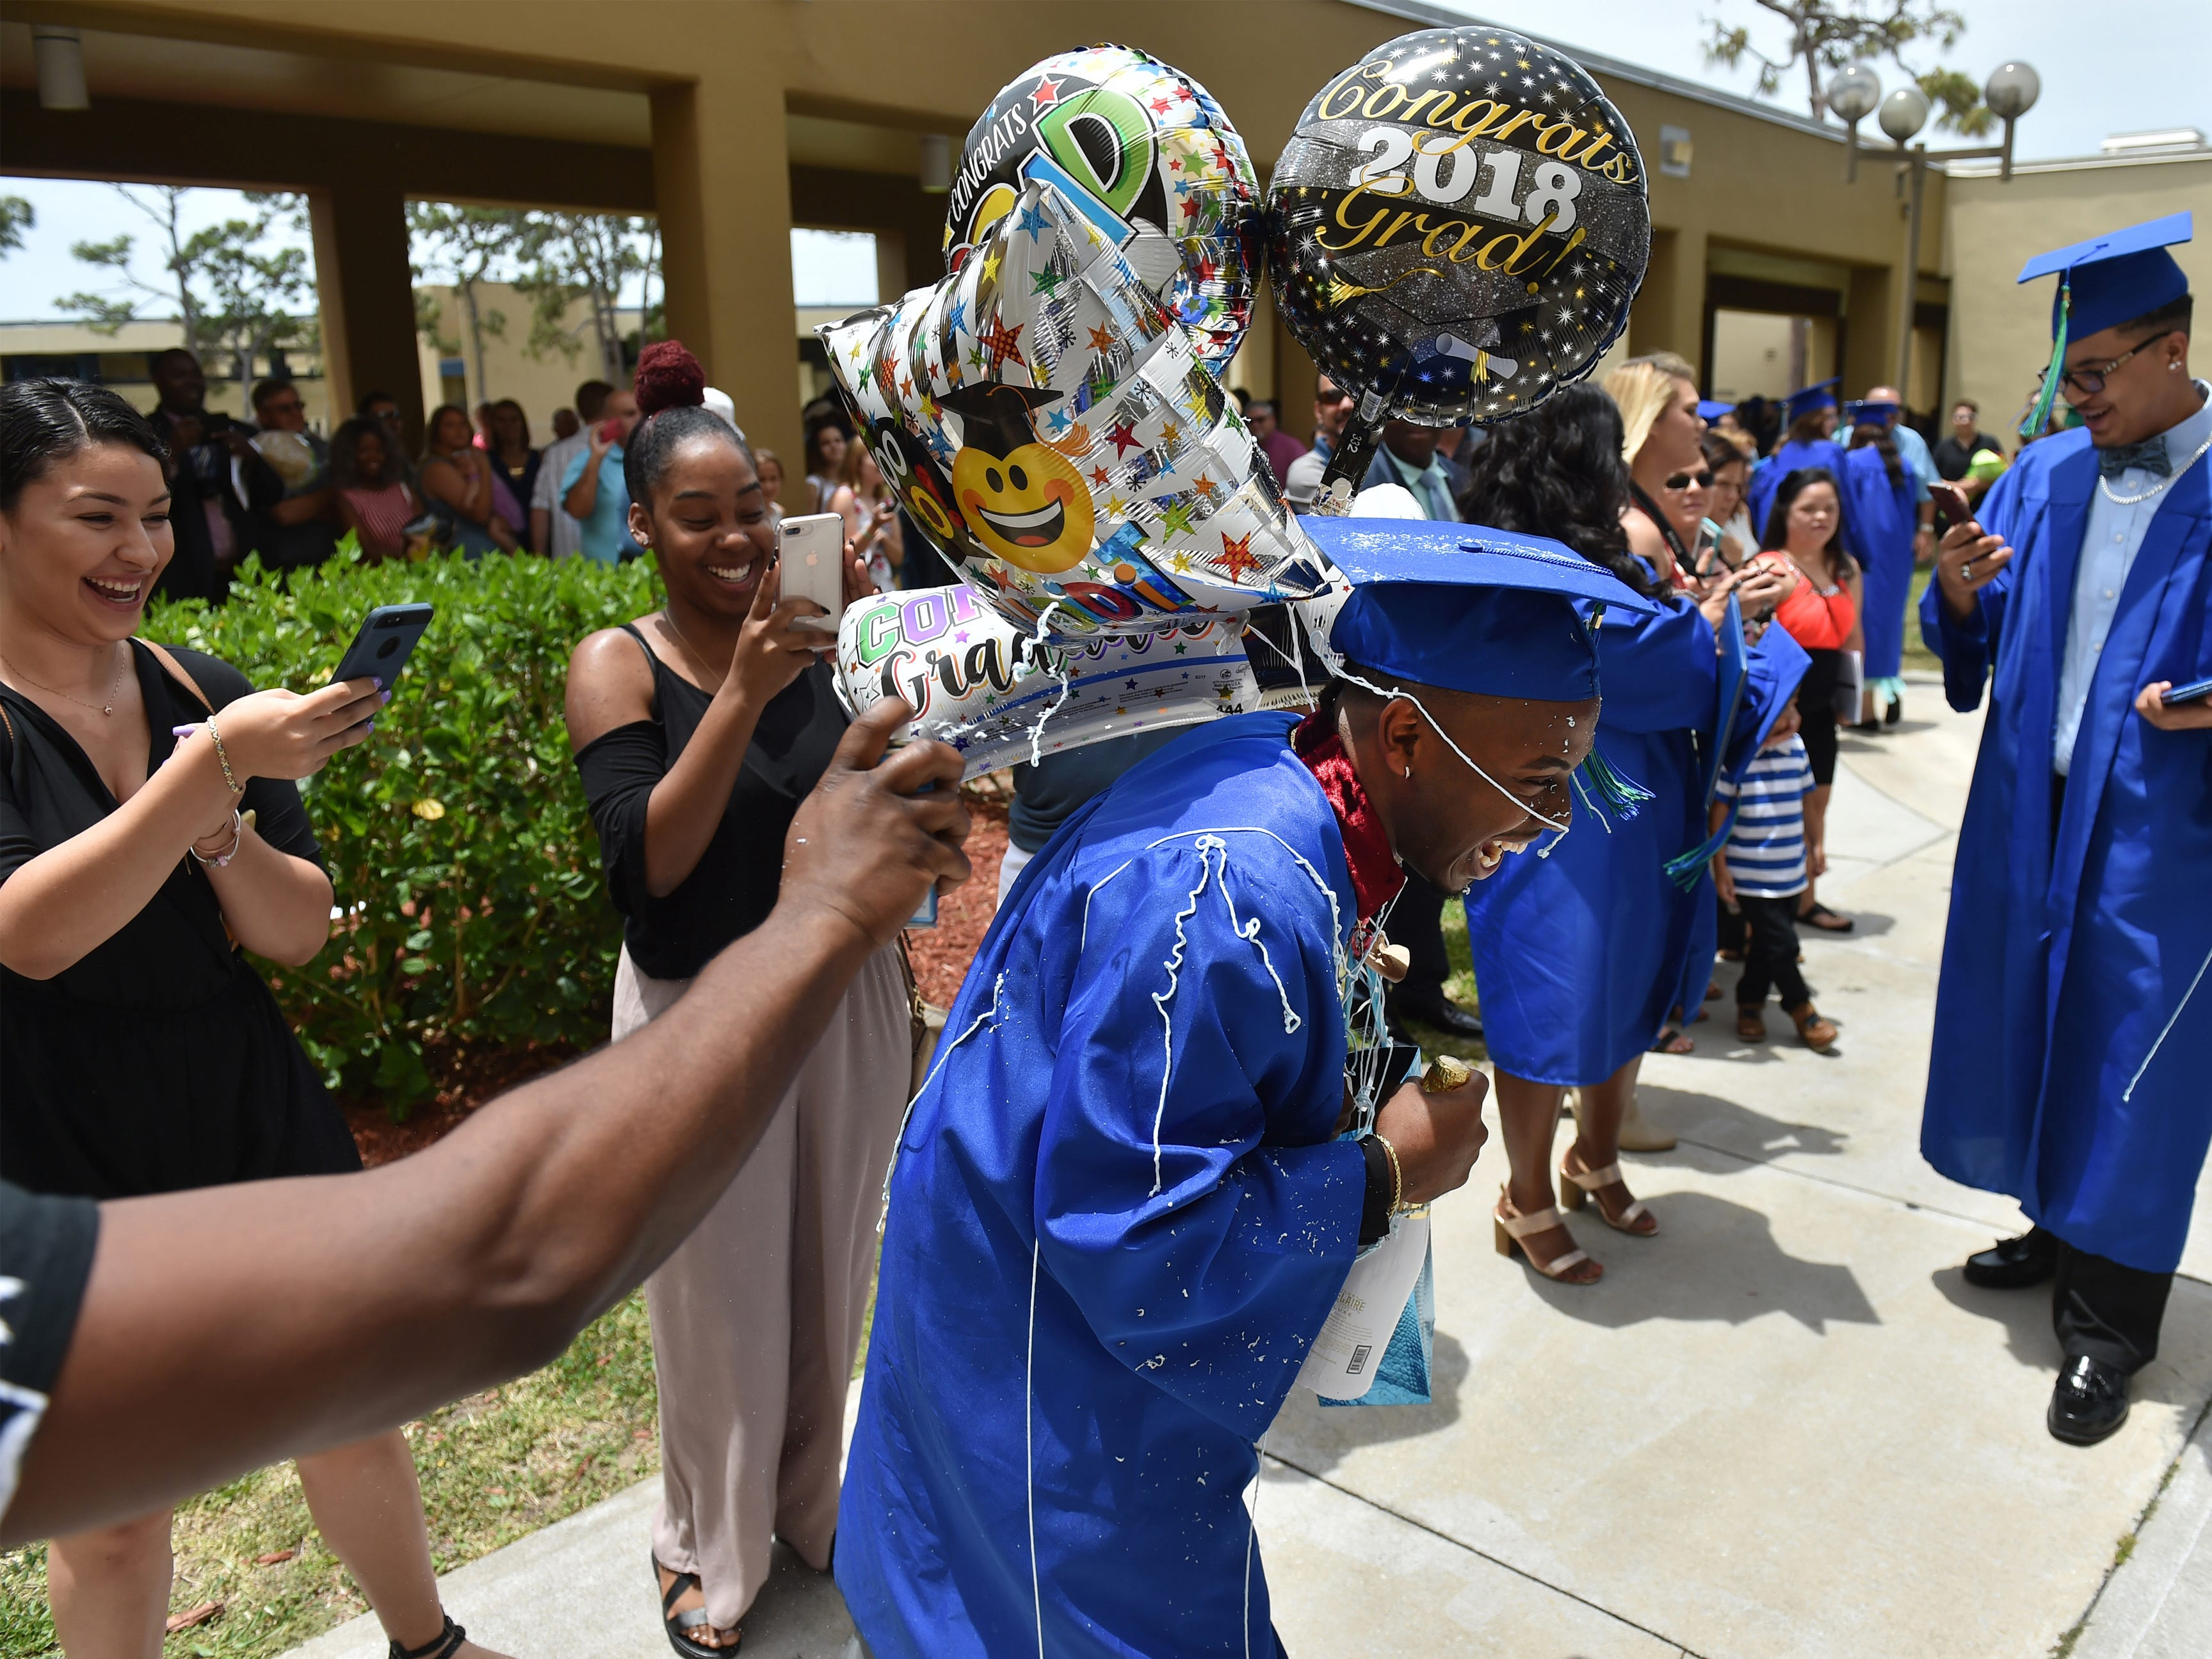 """Damion Dixon, 21, of Palm Bay, gets sprayed with silly string celebrating with family after graduating with an AA degree outside the King Center after the first of two Eastern Florida State College commencement ceremonies on Thursday, May 10, 2018, in Melbourne. """"It's a beautiful feeling, beautiful feeling, it's great"""" Dixon said."""